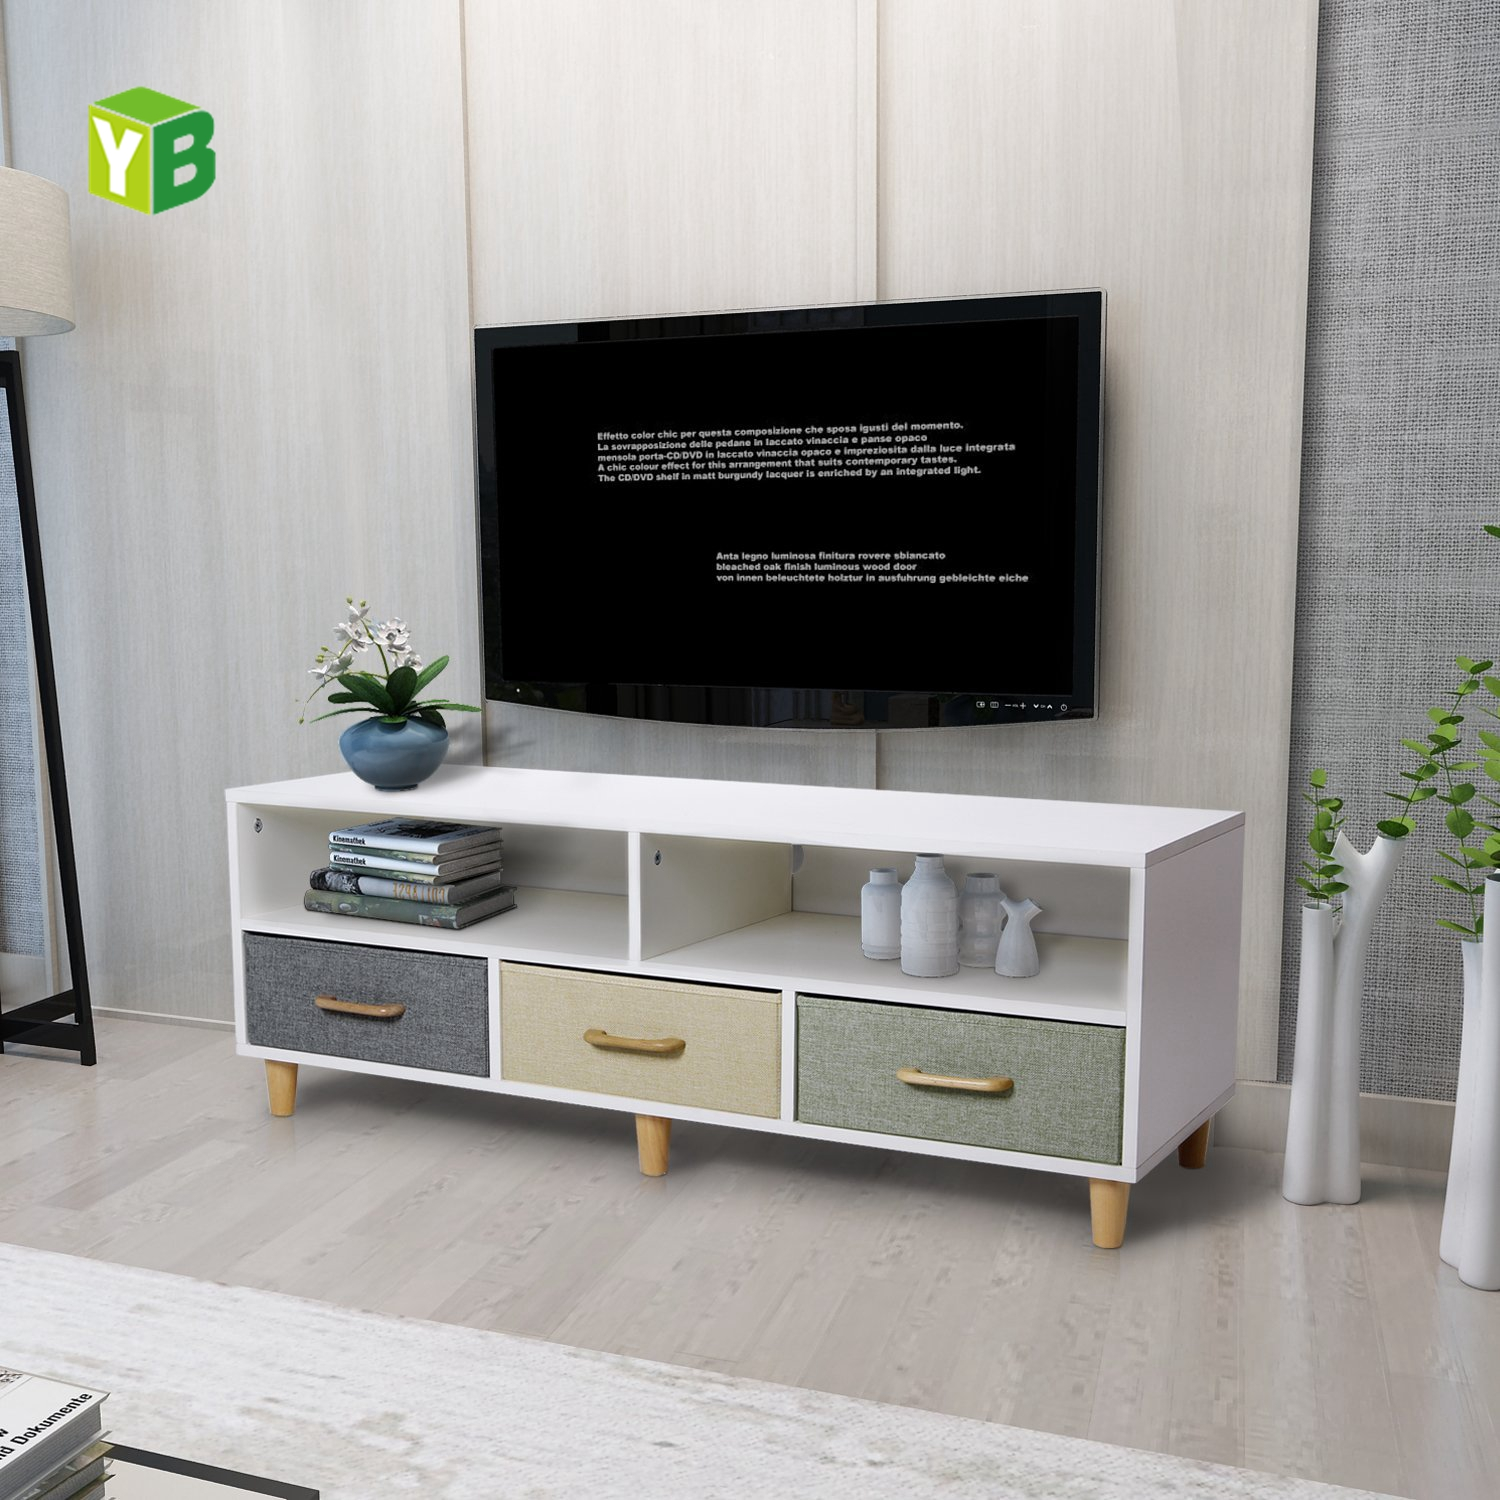 Picture of: Yibang Cheap Beautiful Wood Tv Stand Furniture Modern Small China New Tv Wooden Cabinet Buy Wood Tv Stand Beautiful Tv Stand Wood Tv Stand Product On Alibaba Com